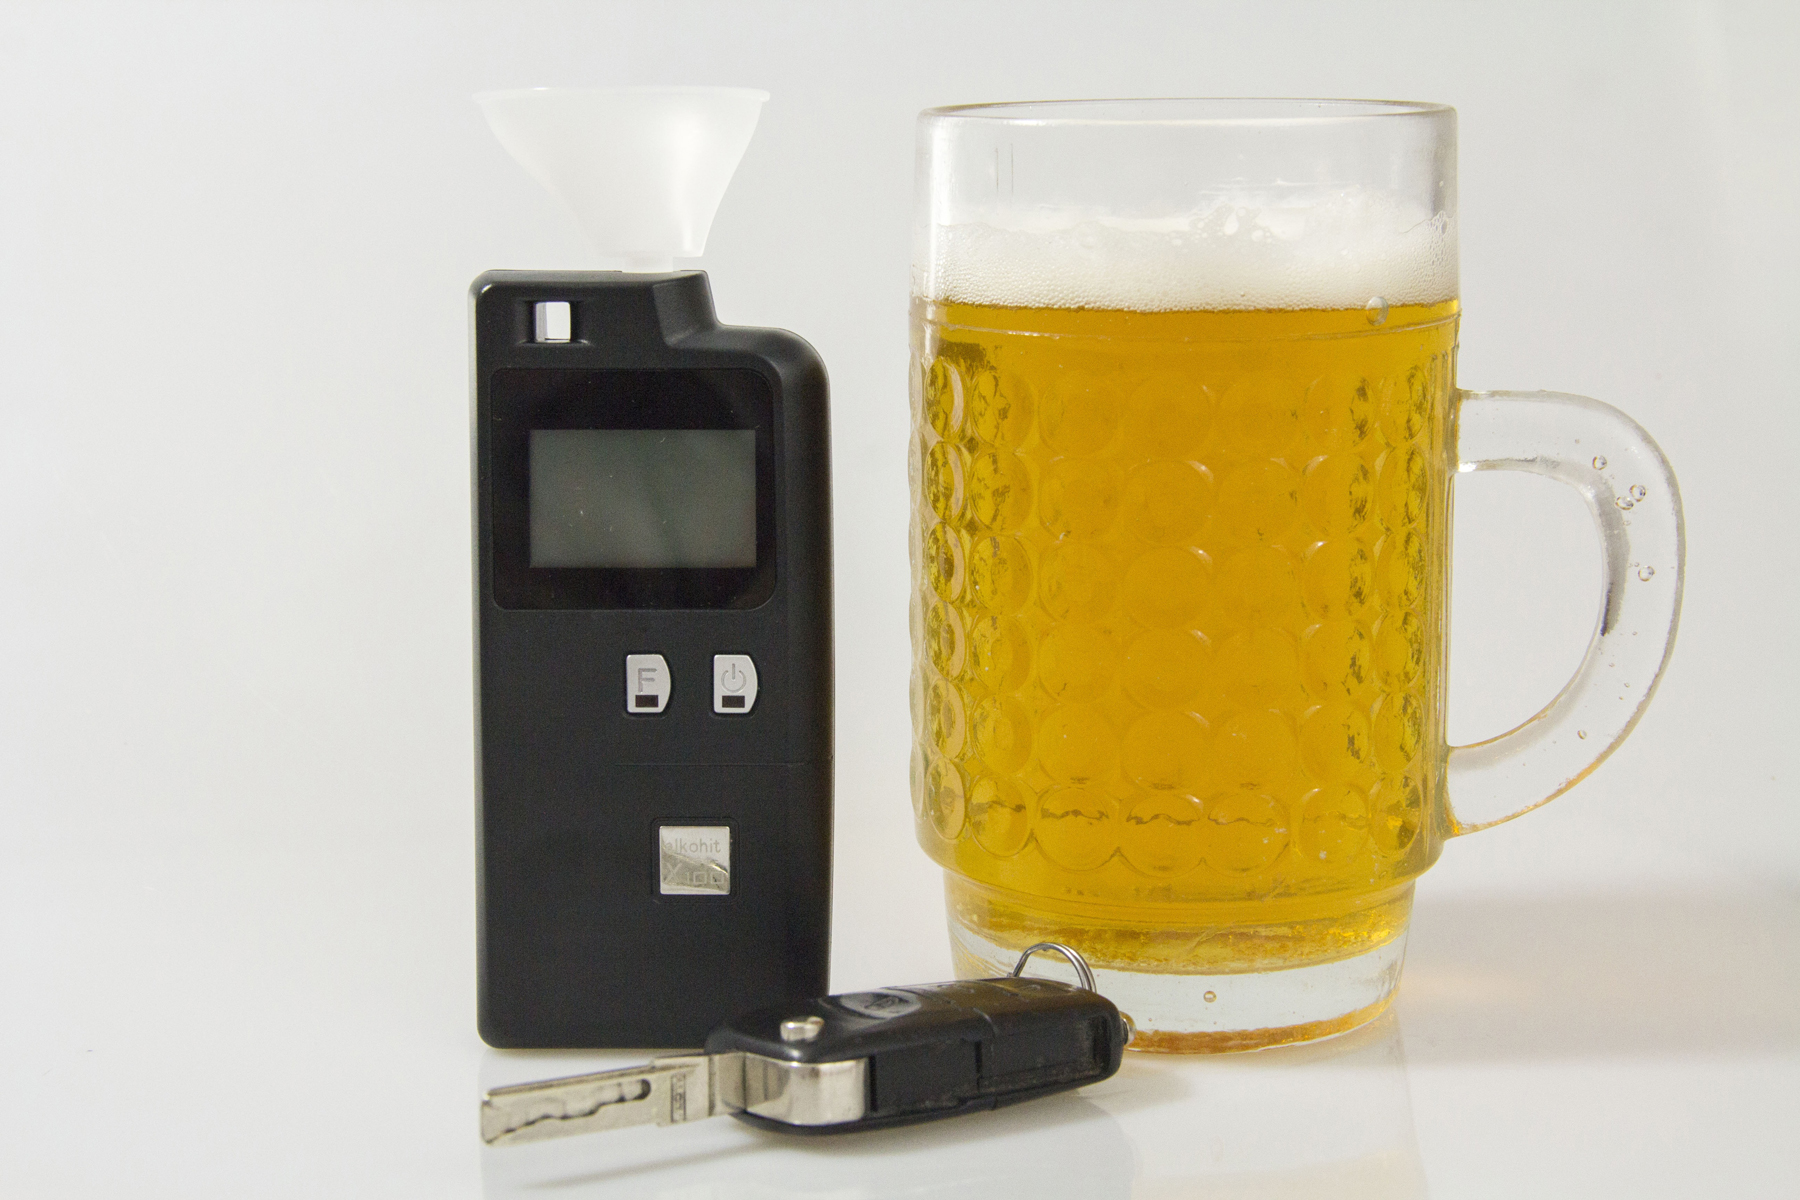 A breathalyser on a table next to a pint of beer and car keys